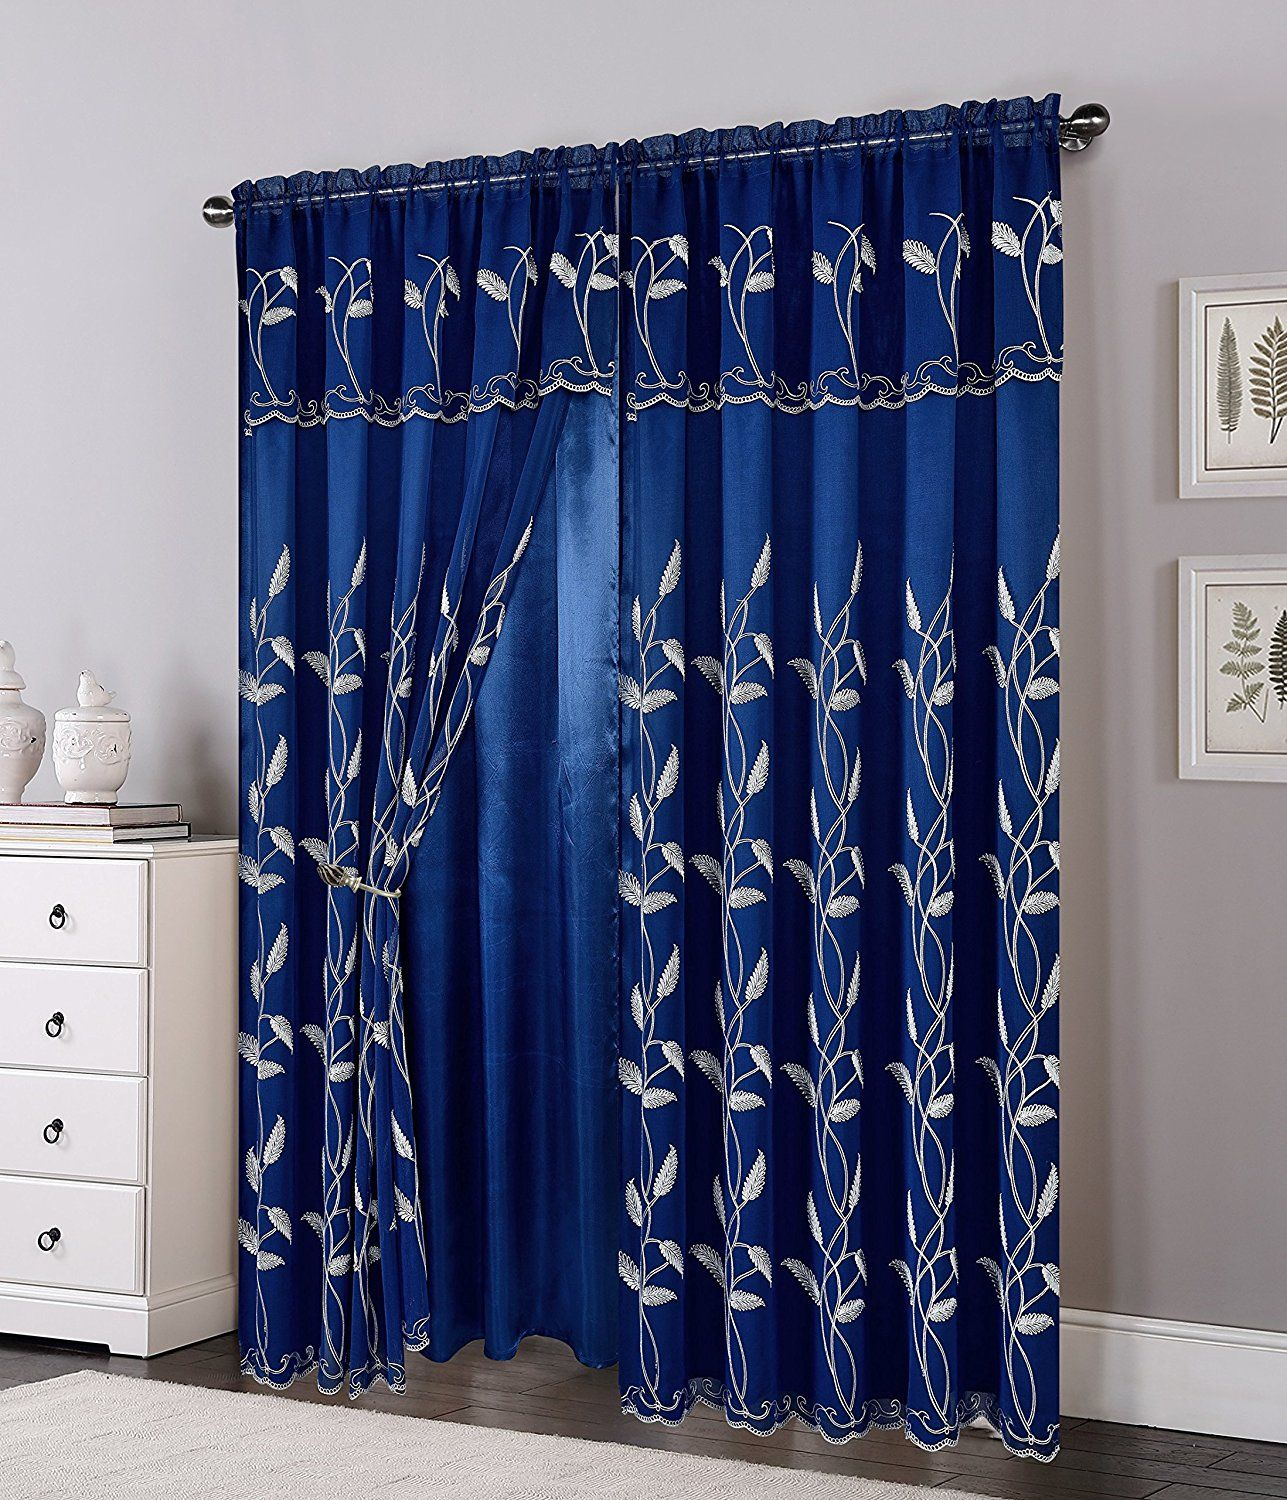 Amazon Com Elegant Comfort Luxurious Beautiful Curtain Panel Set With Attached Valance And Backing 54 X 84 In Luxury Curtains Cool Curtains Colorful Curtains